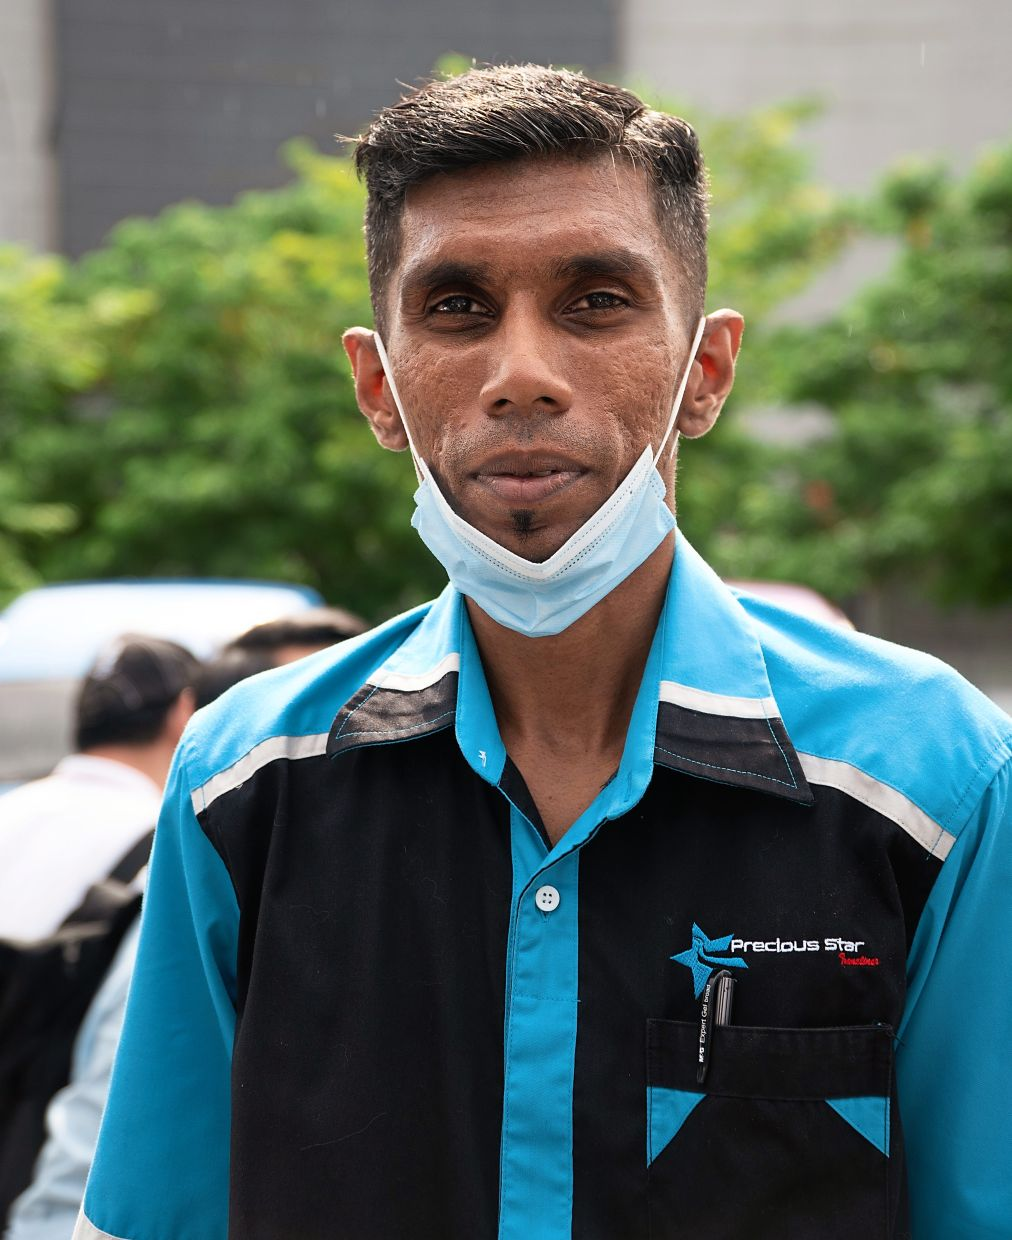 Thiagarajan says the Covid-19 pandemic has badly affected many bus drivers and operators.